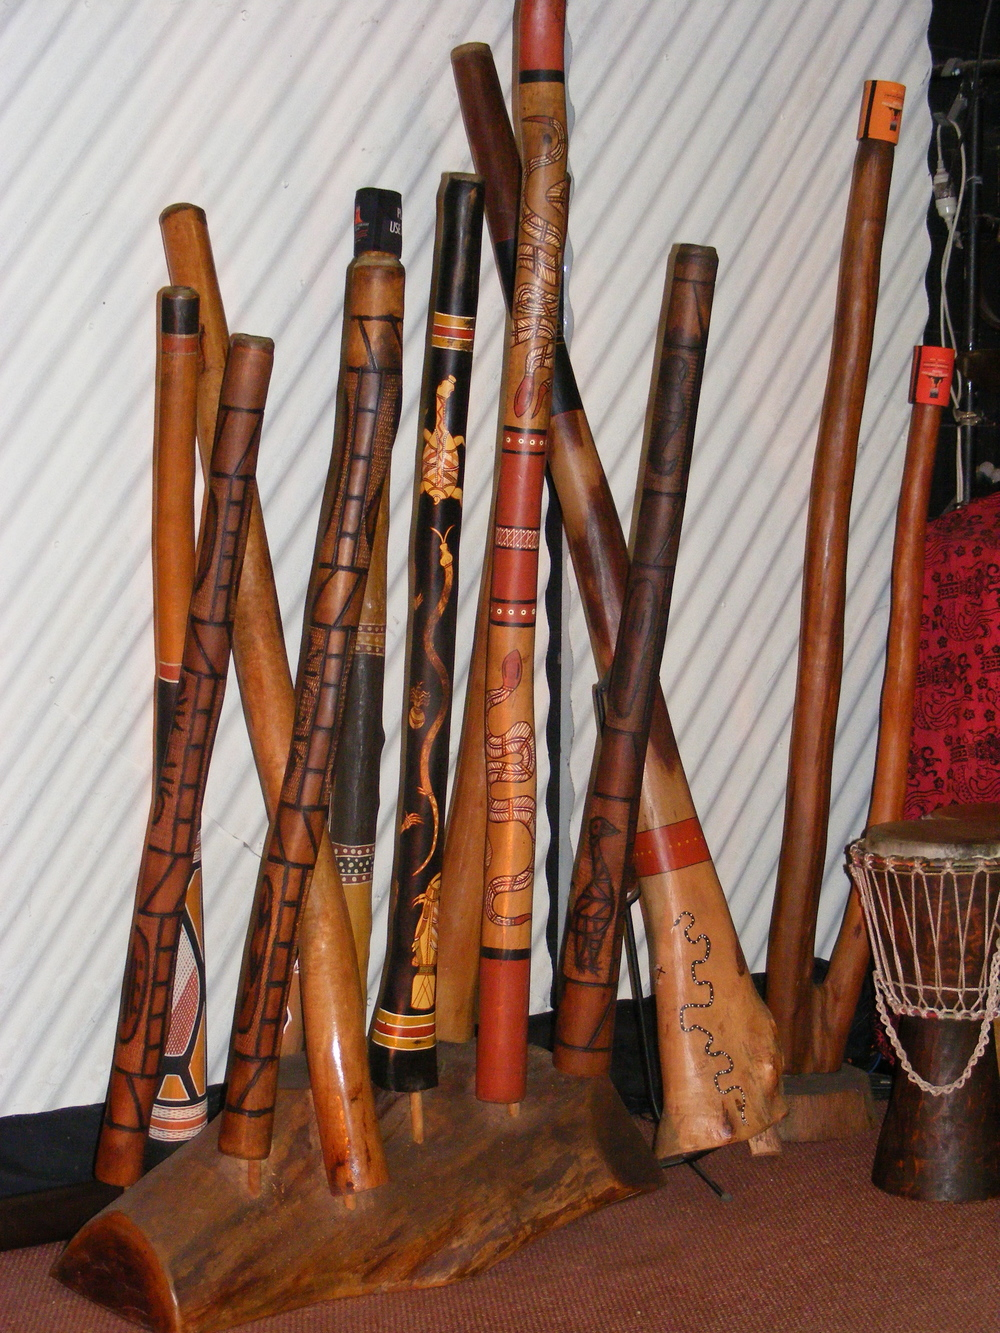 Some of the instruments used in the show.